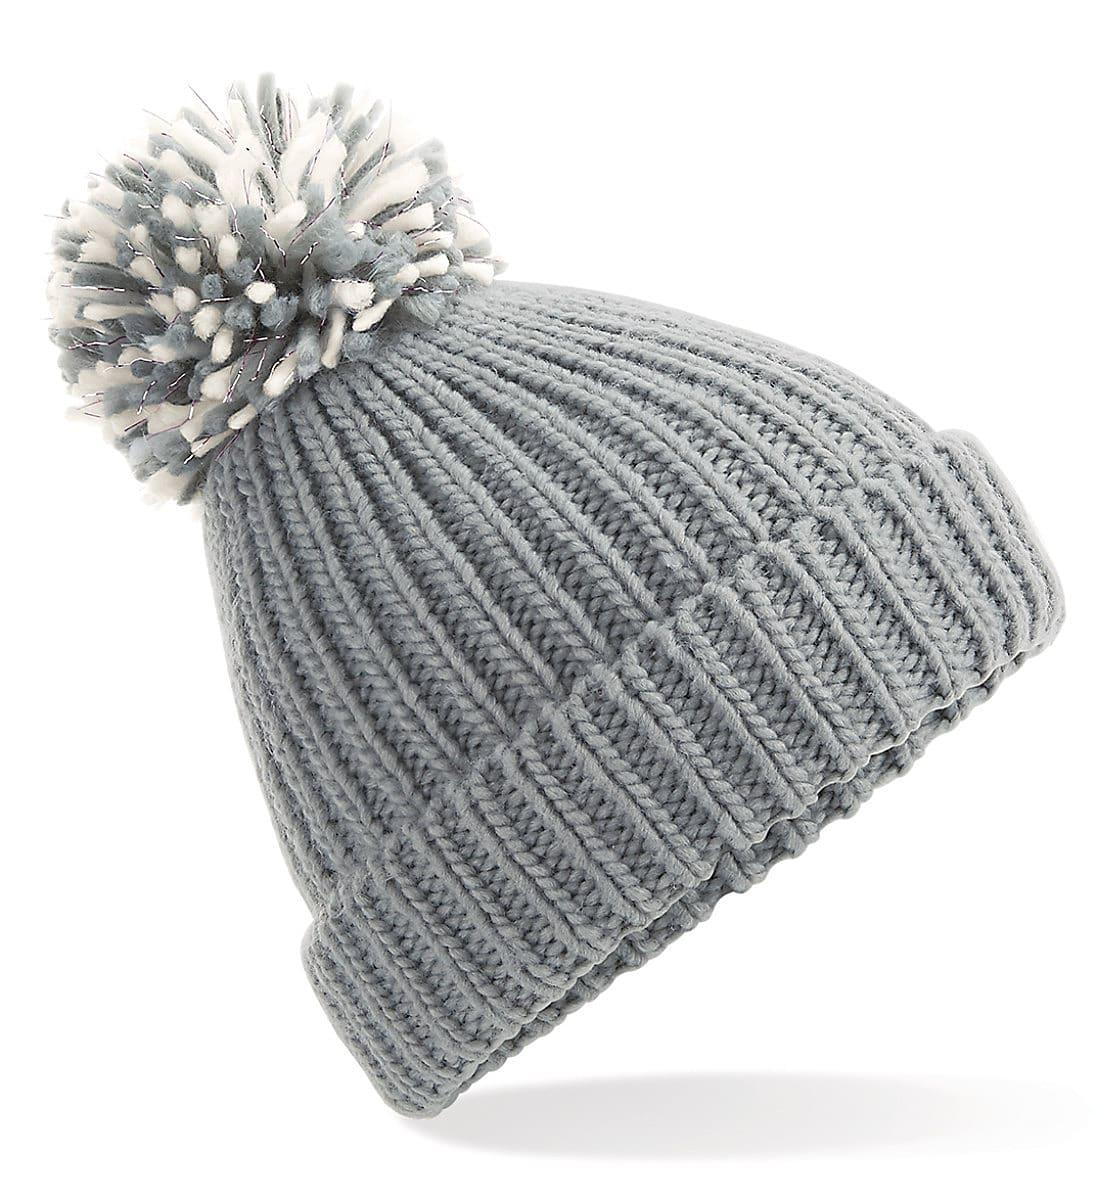 Beechfield Shimmer Pom Pom Beanie Hat in Light Grey / Off-White (Product Code: B409)